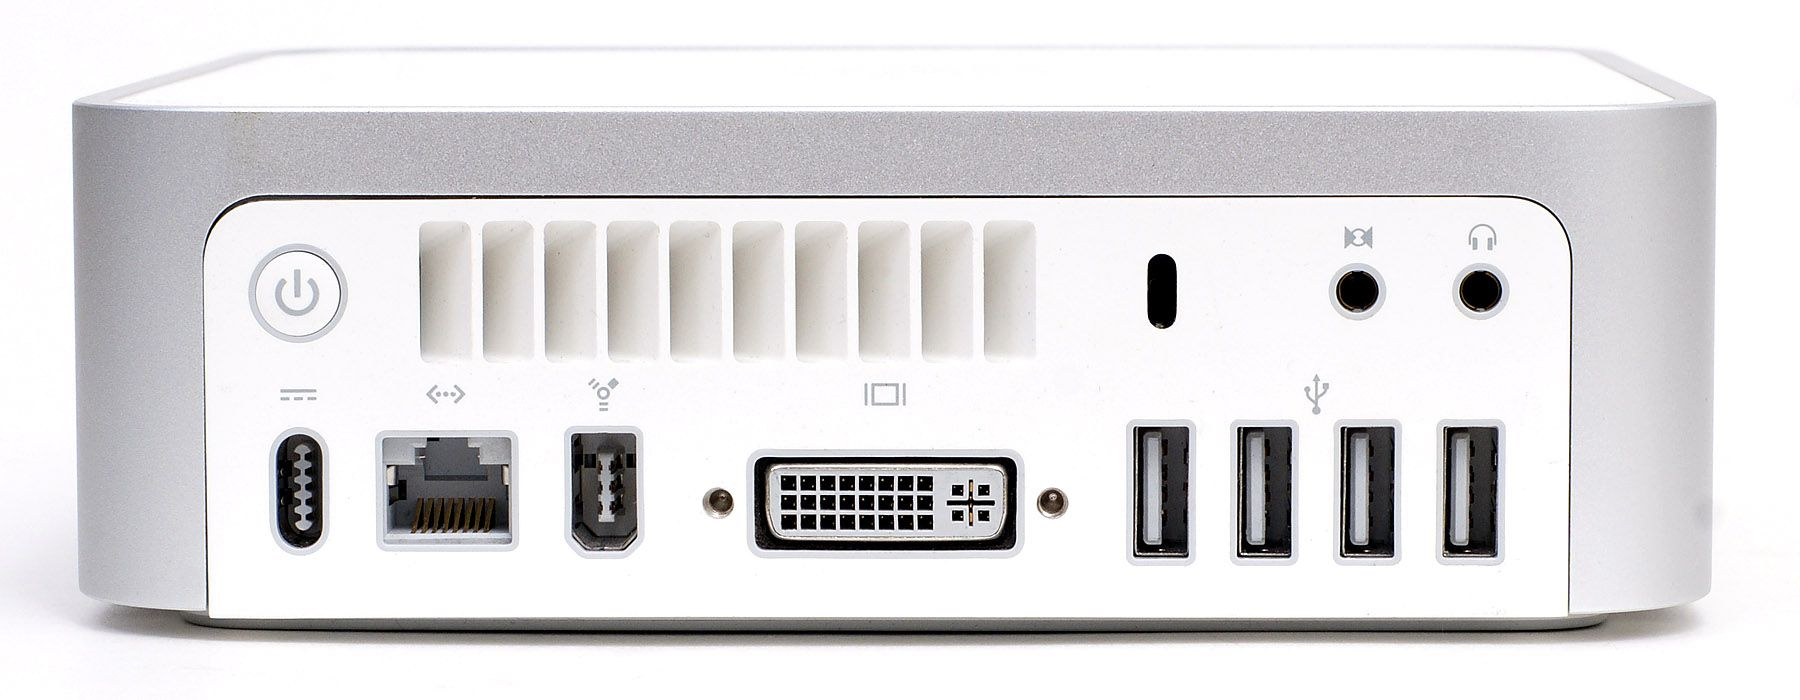 Rearview of M1 Mac Mini and all of its ports